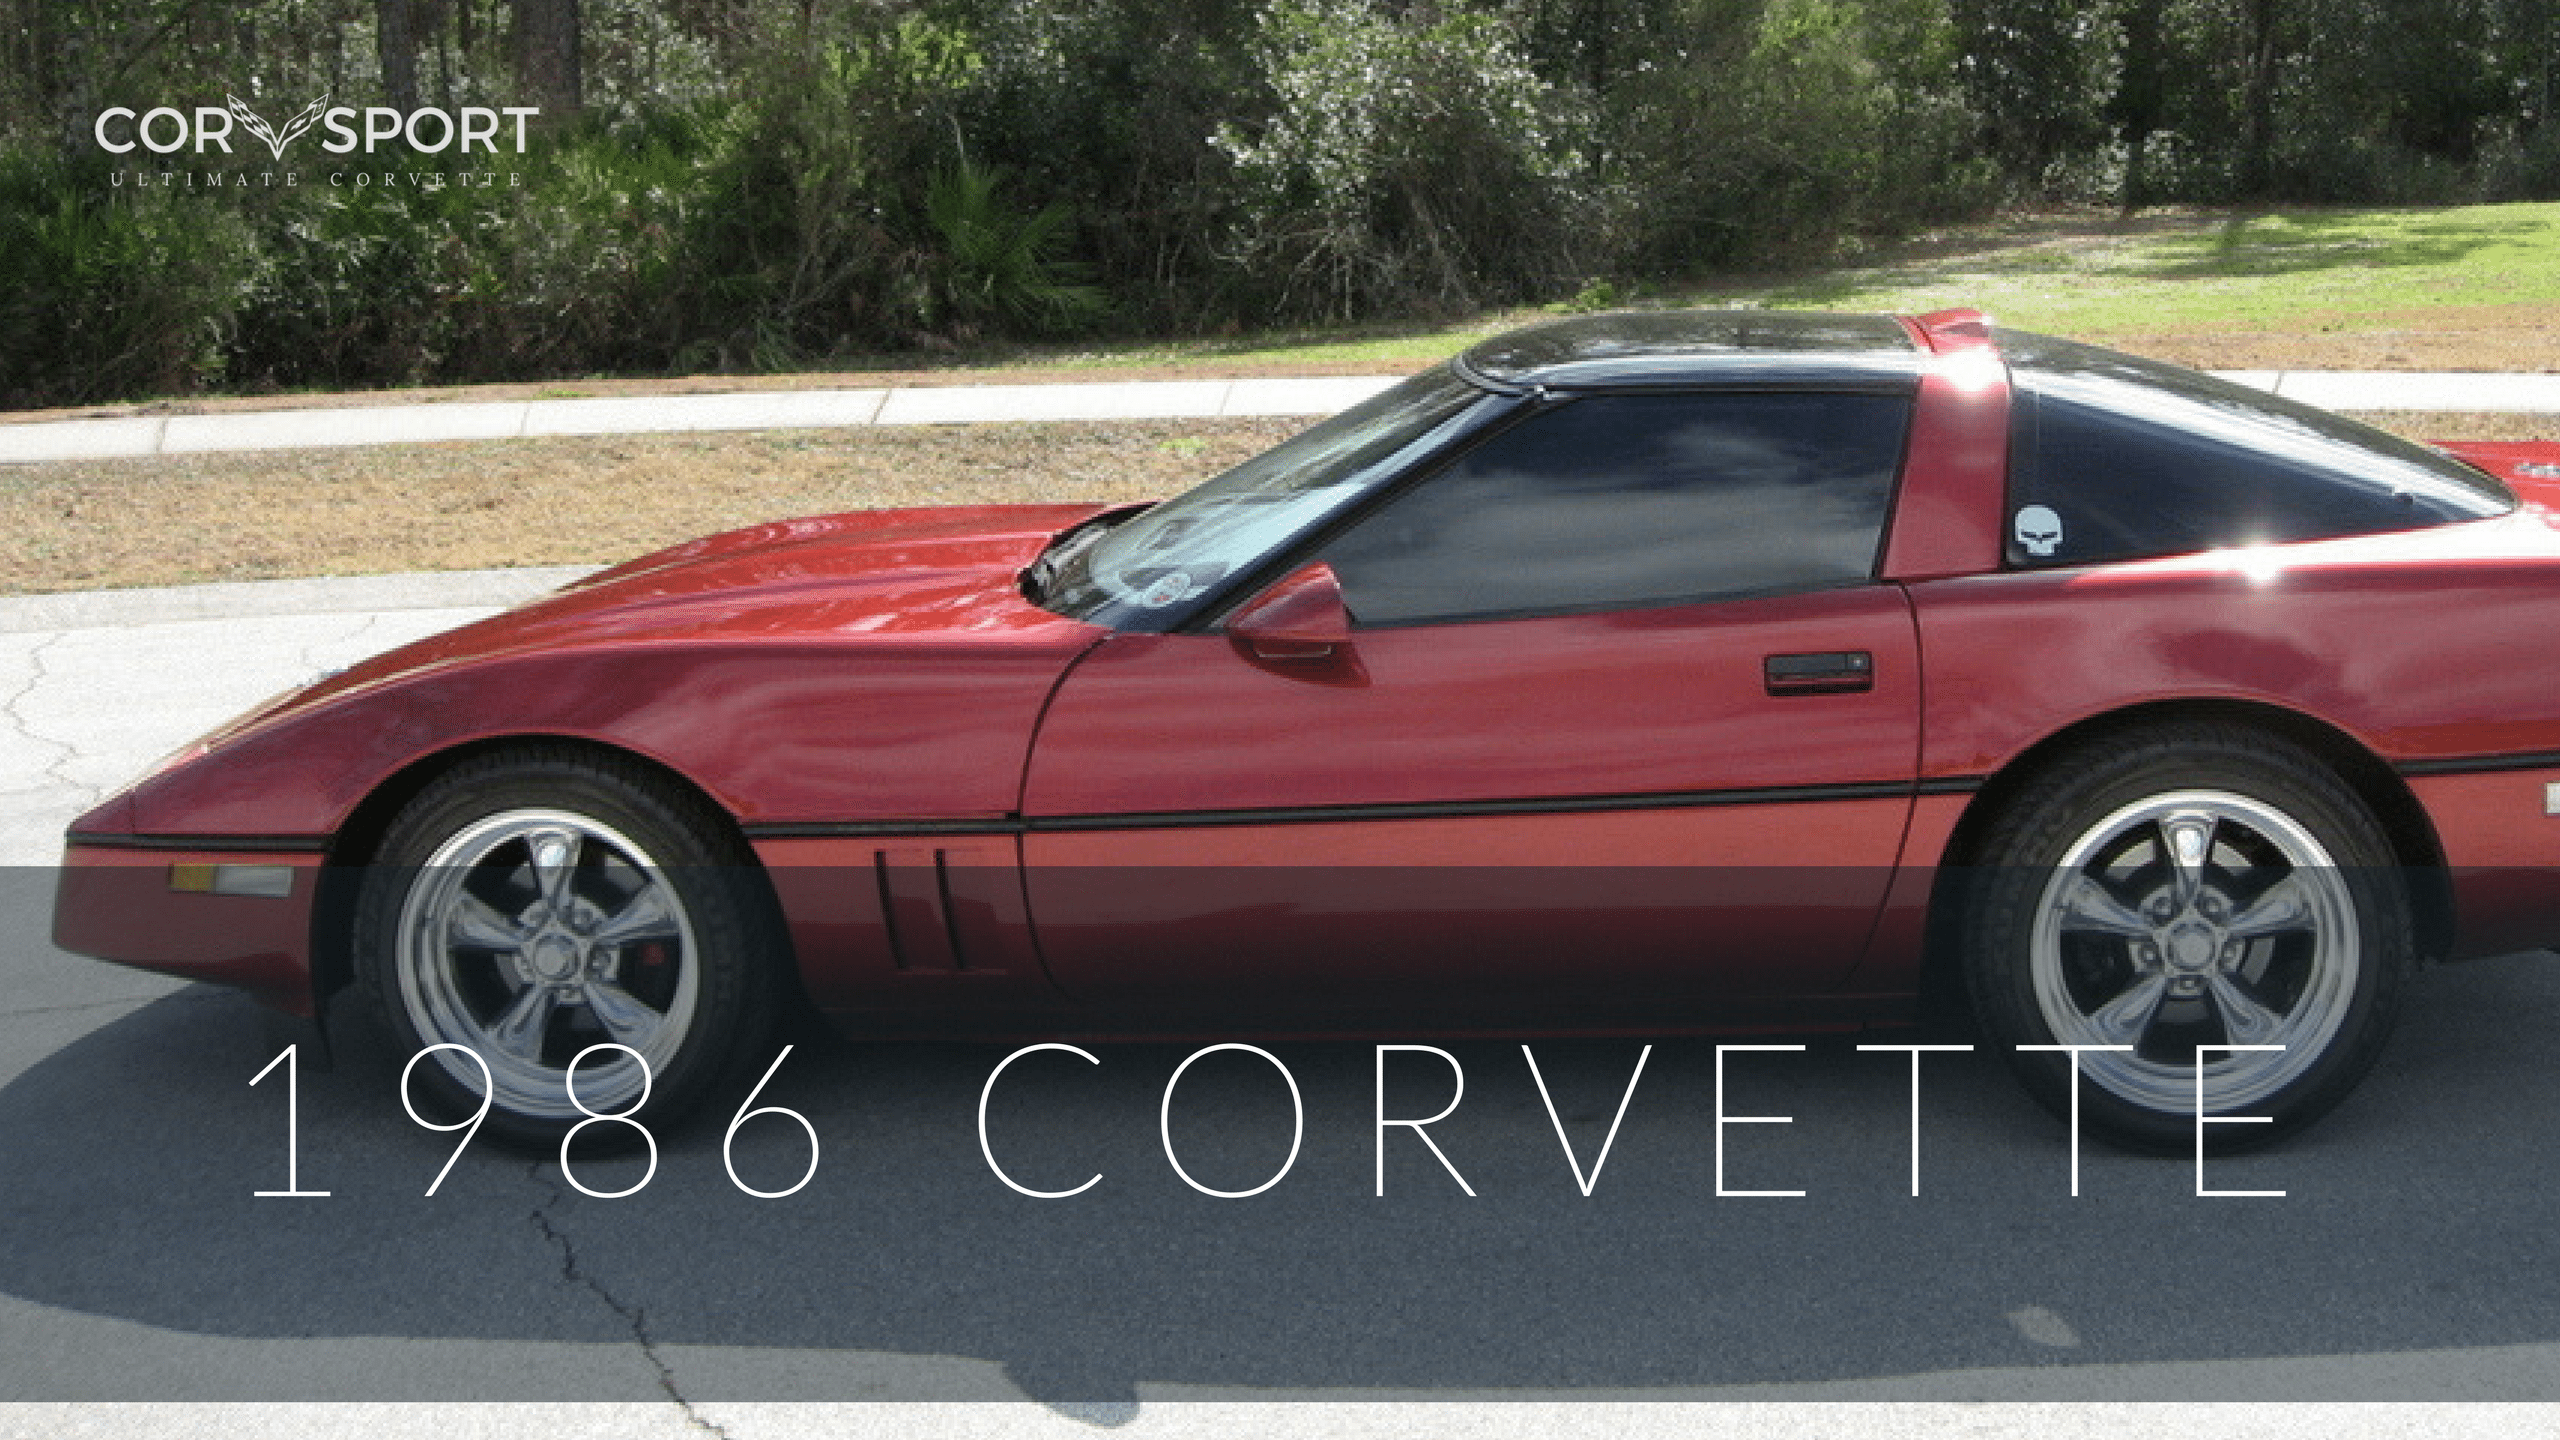 1986 c4 corvette ultimate guide overview specs vin info rh corvsport com 88 corvette service manual 88 corvette service manual